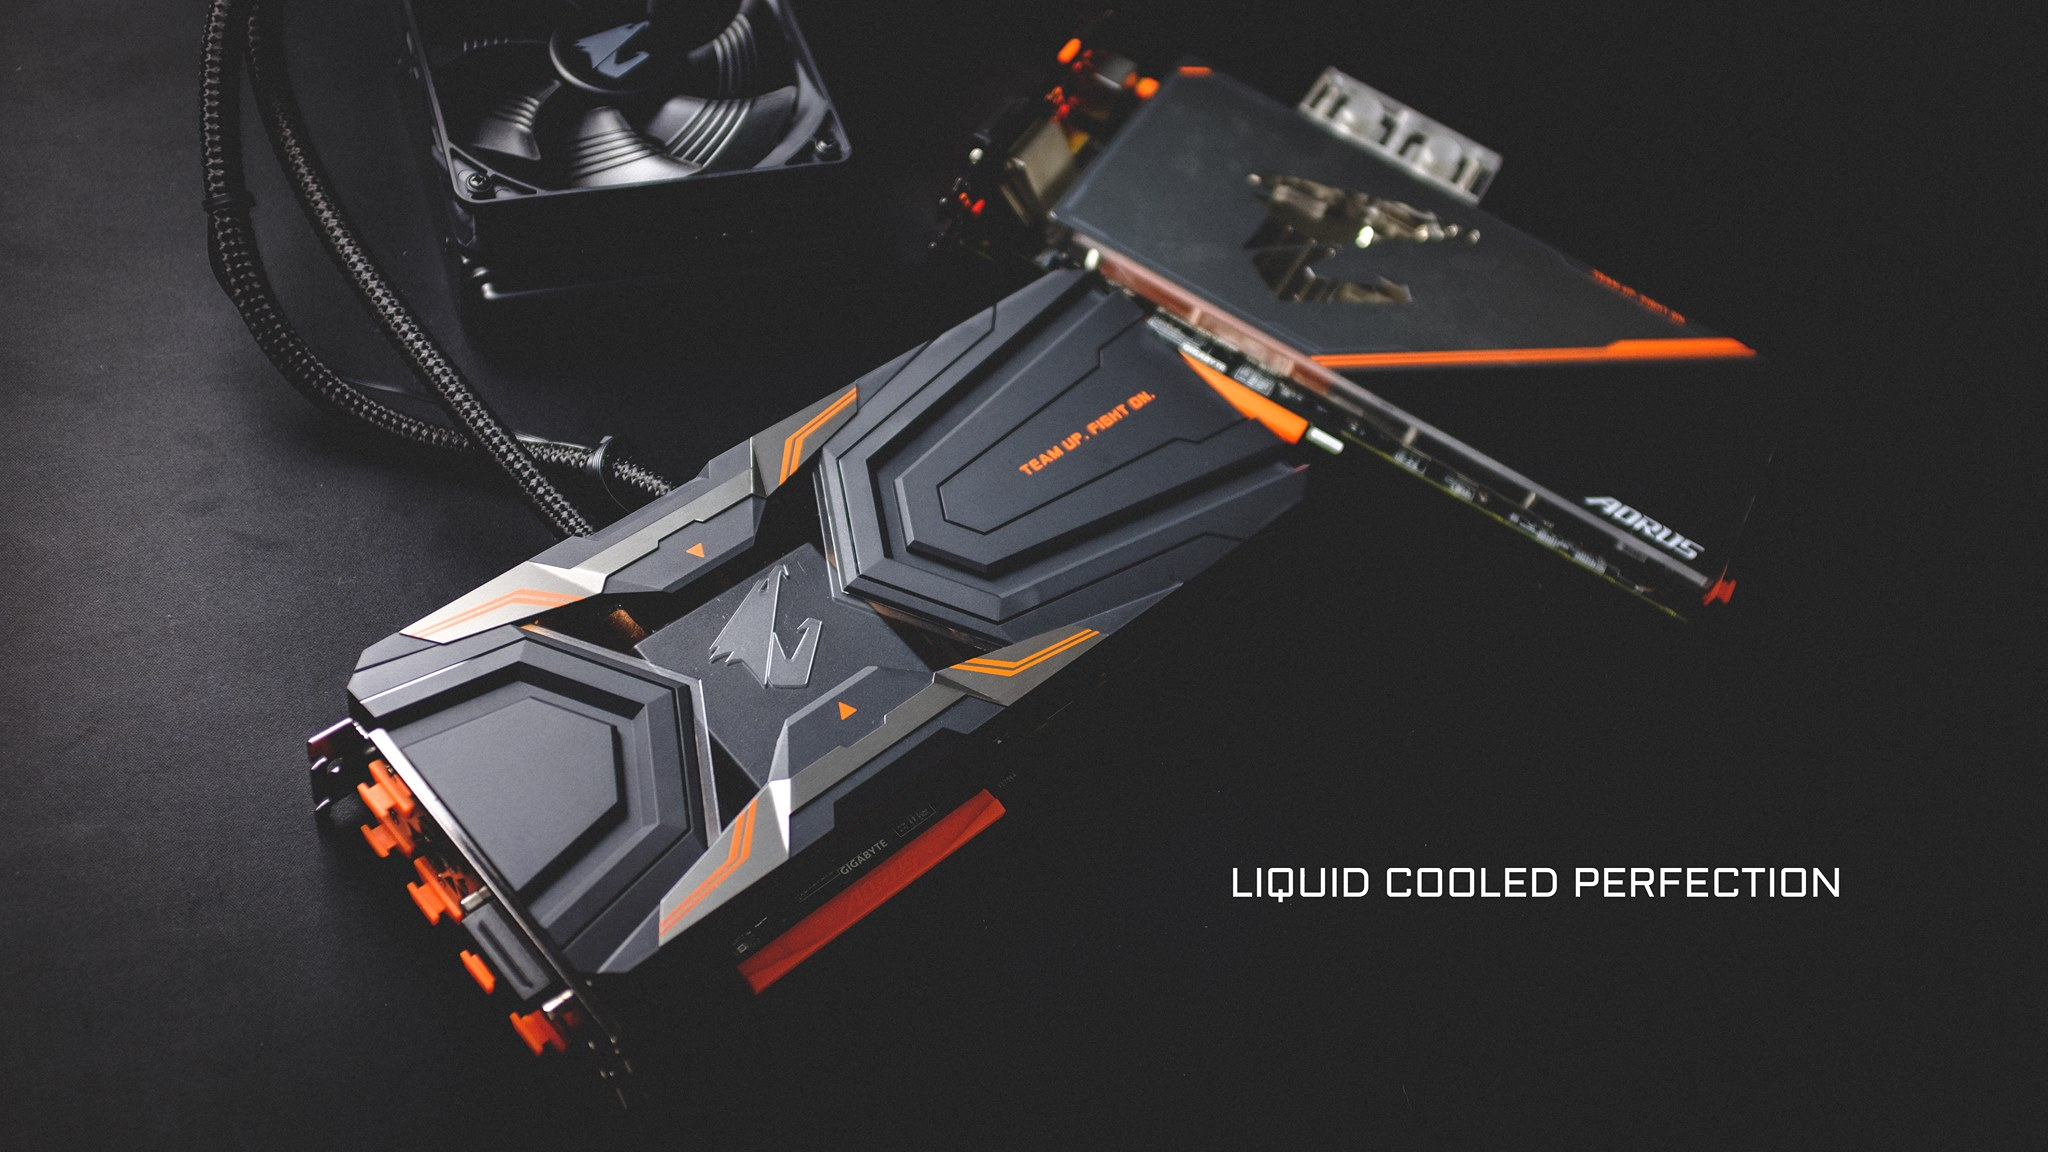 Two Liquid Cooled Aorus Geforce Gtx 1080 Ti Graphics Cards